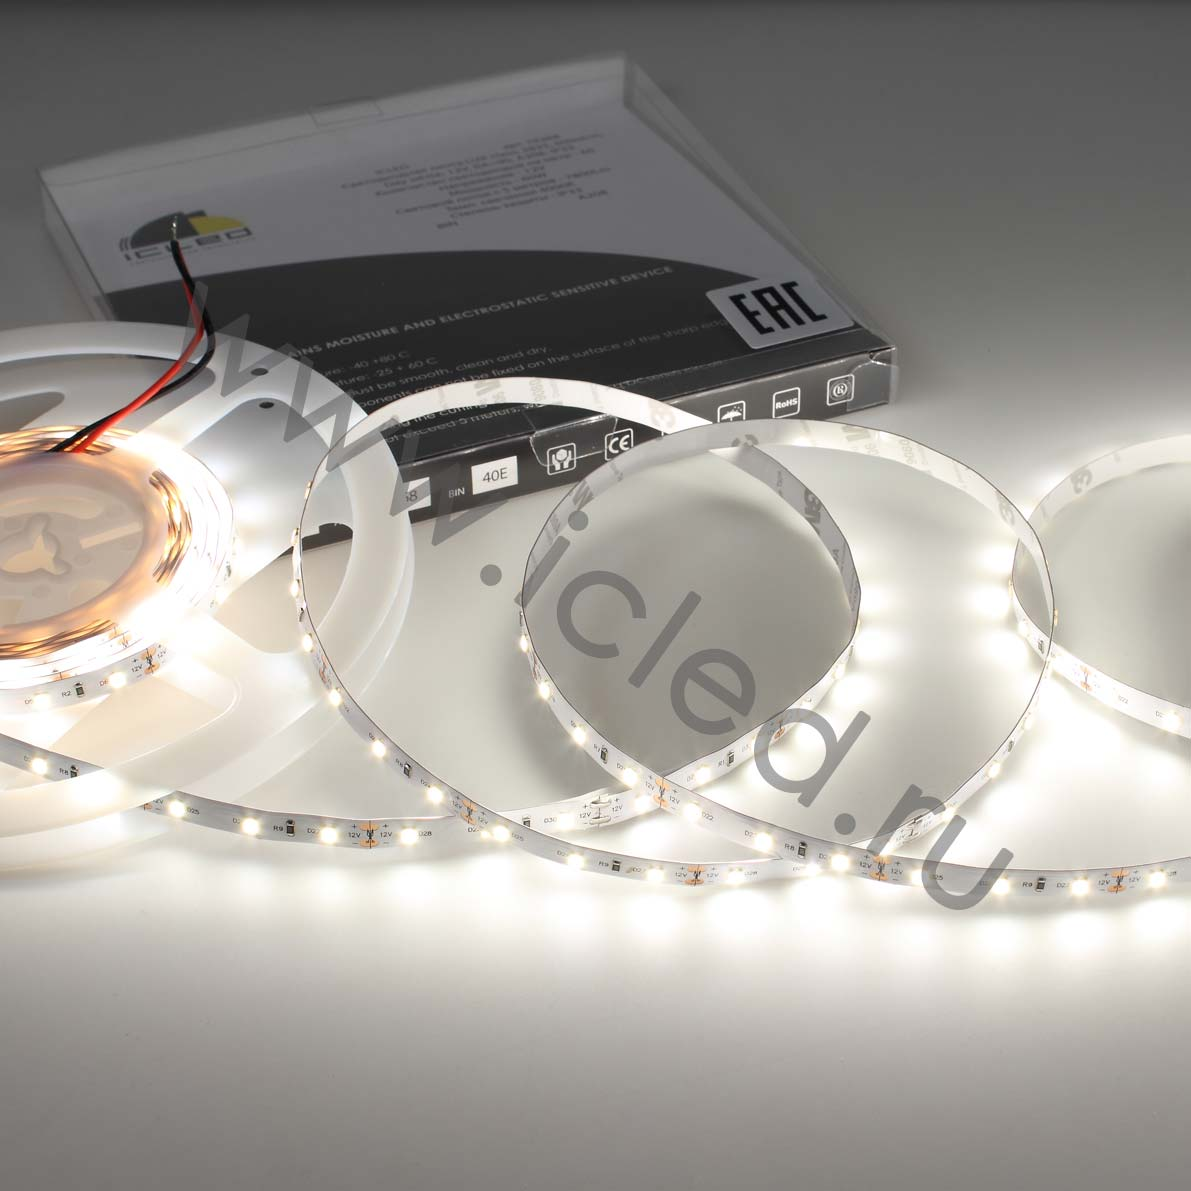 Светодиодная лента LUX class, 2835, 60led/m, Day white, 12V, IP33, CRI>90, A208